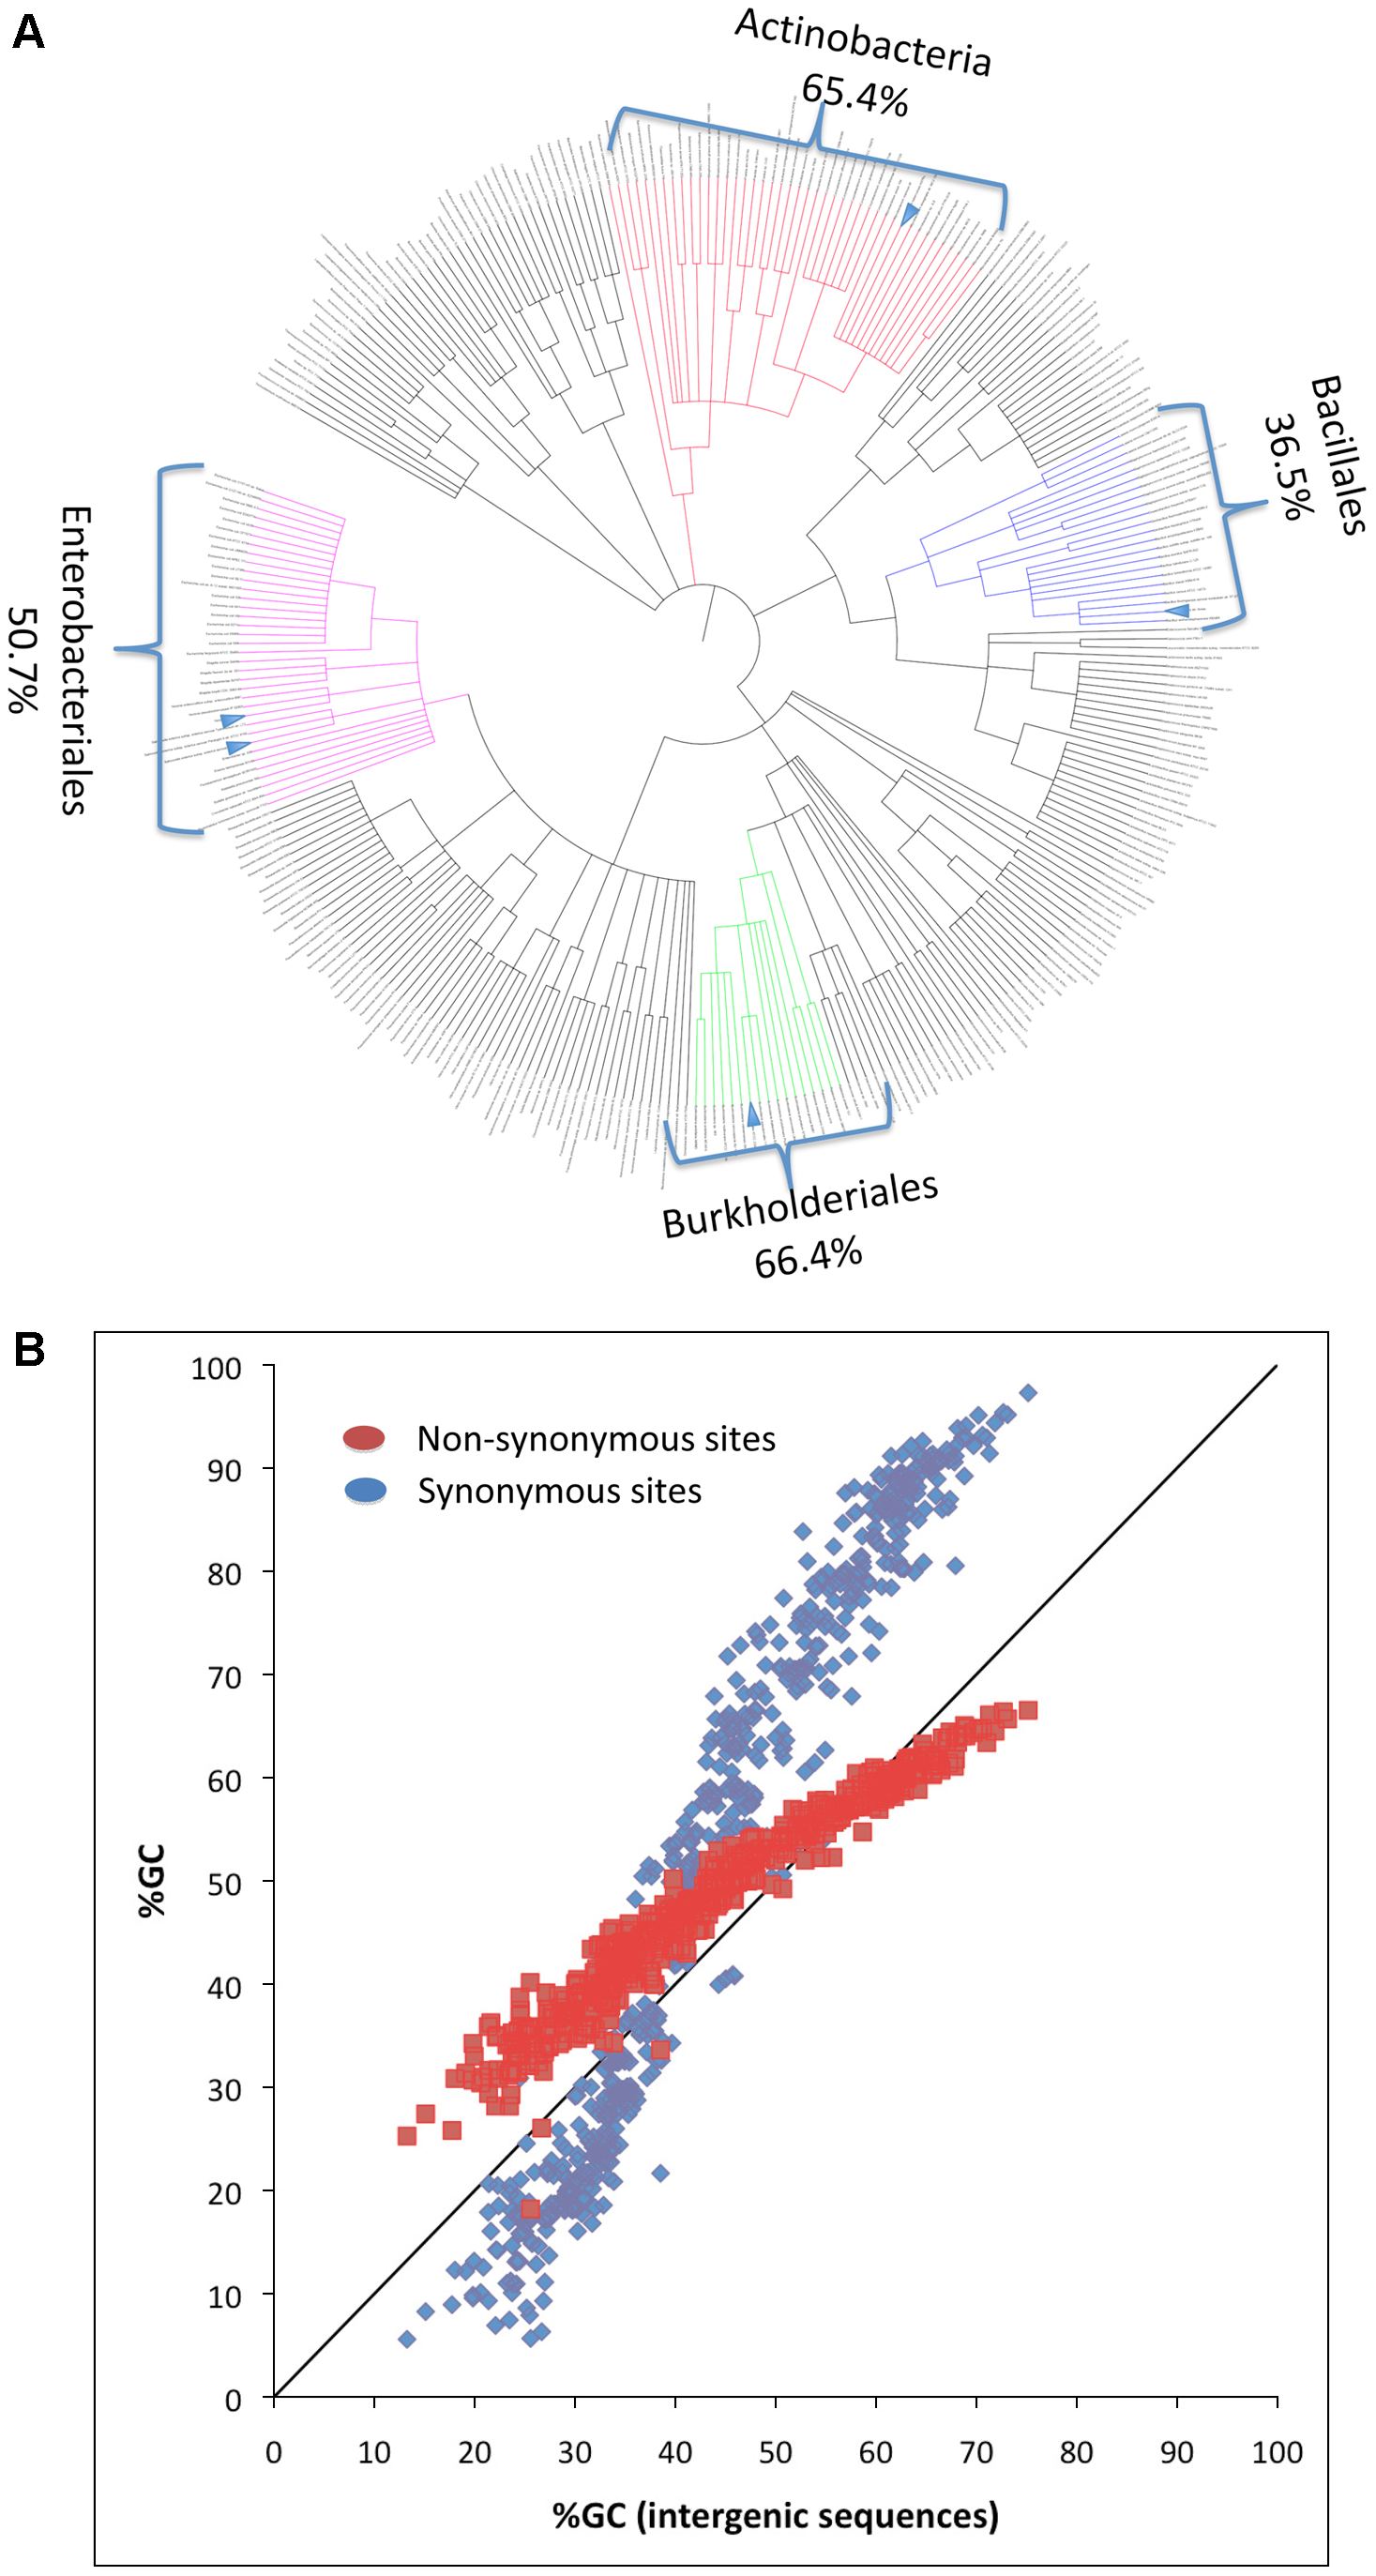 Phylogenetic and genomic variation in GC content.